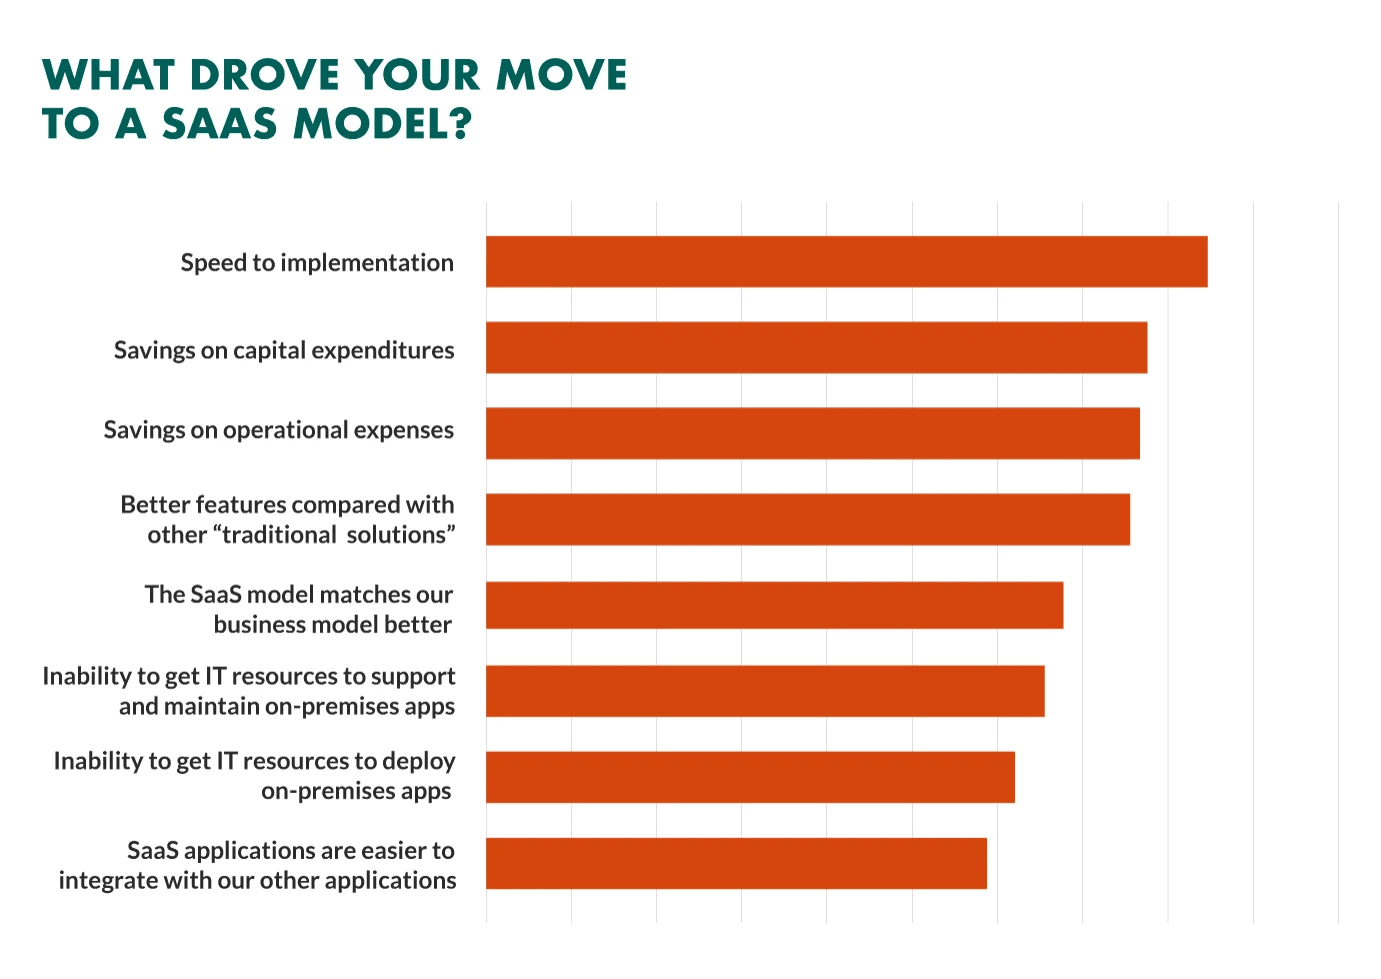 what drove your move to saas model